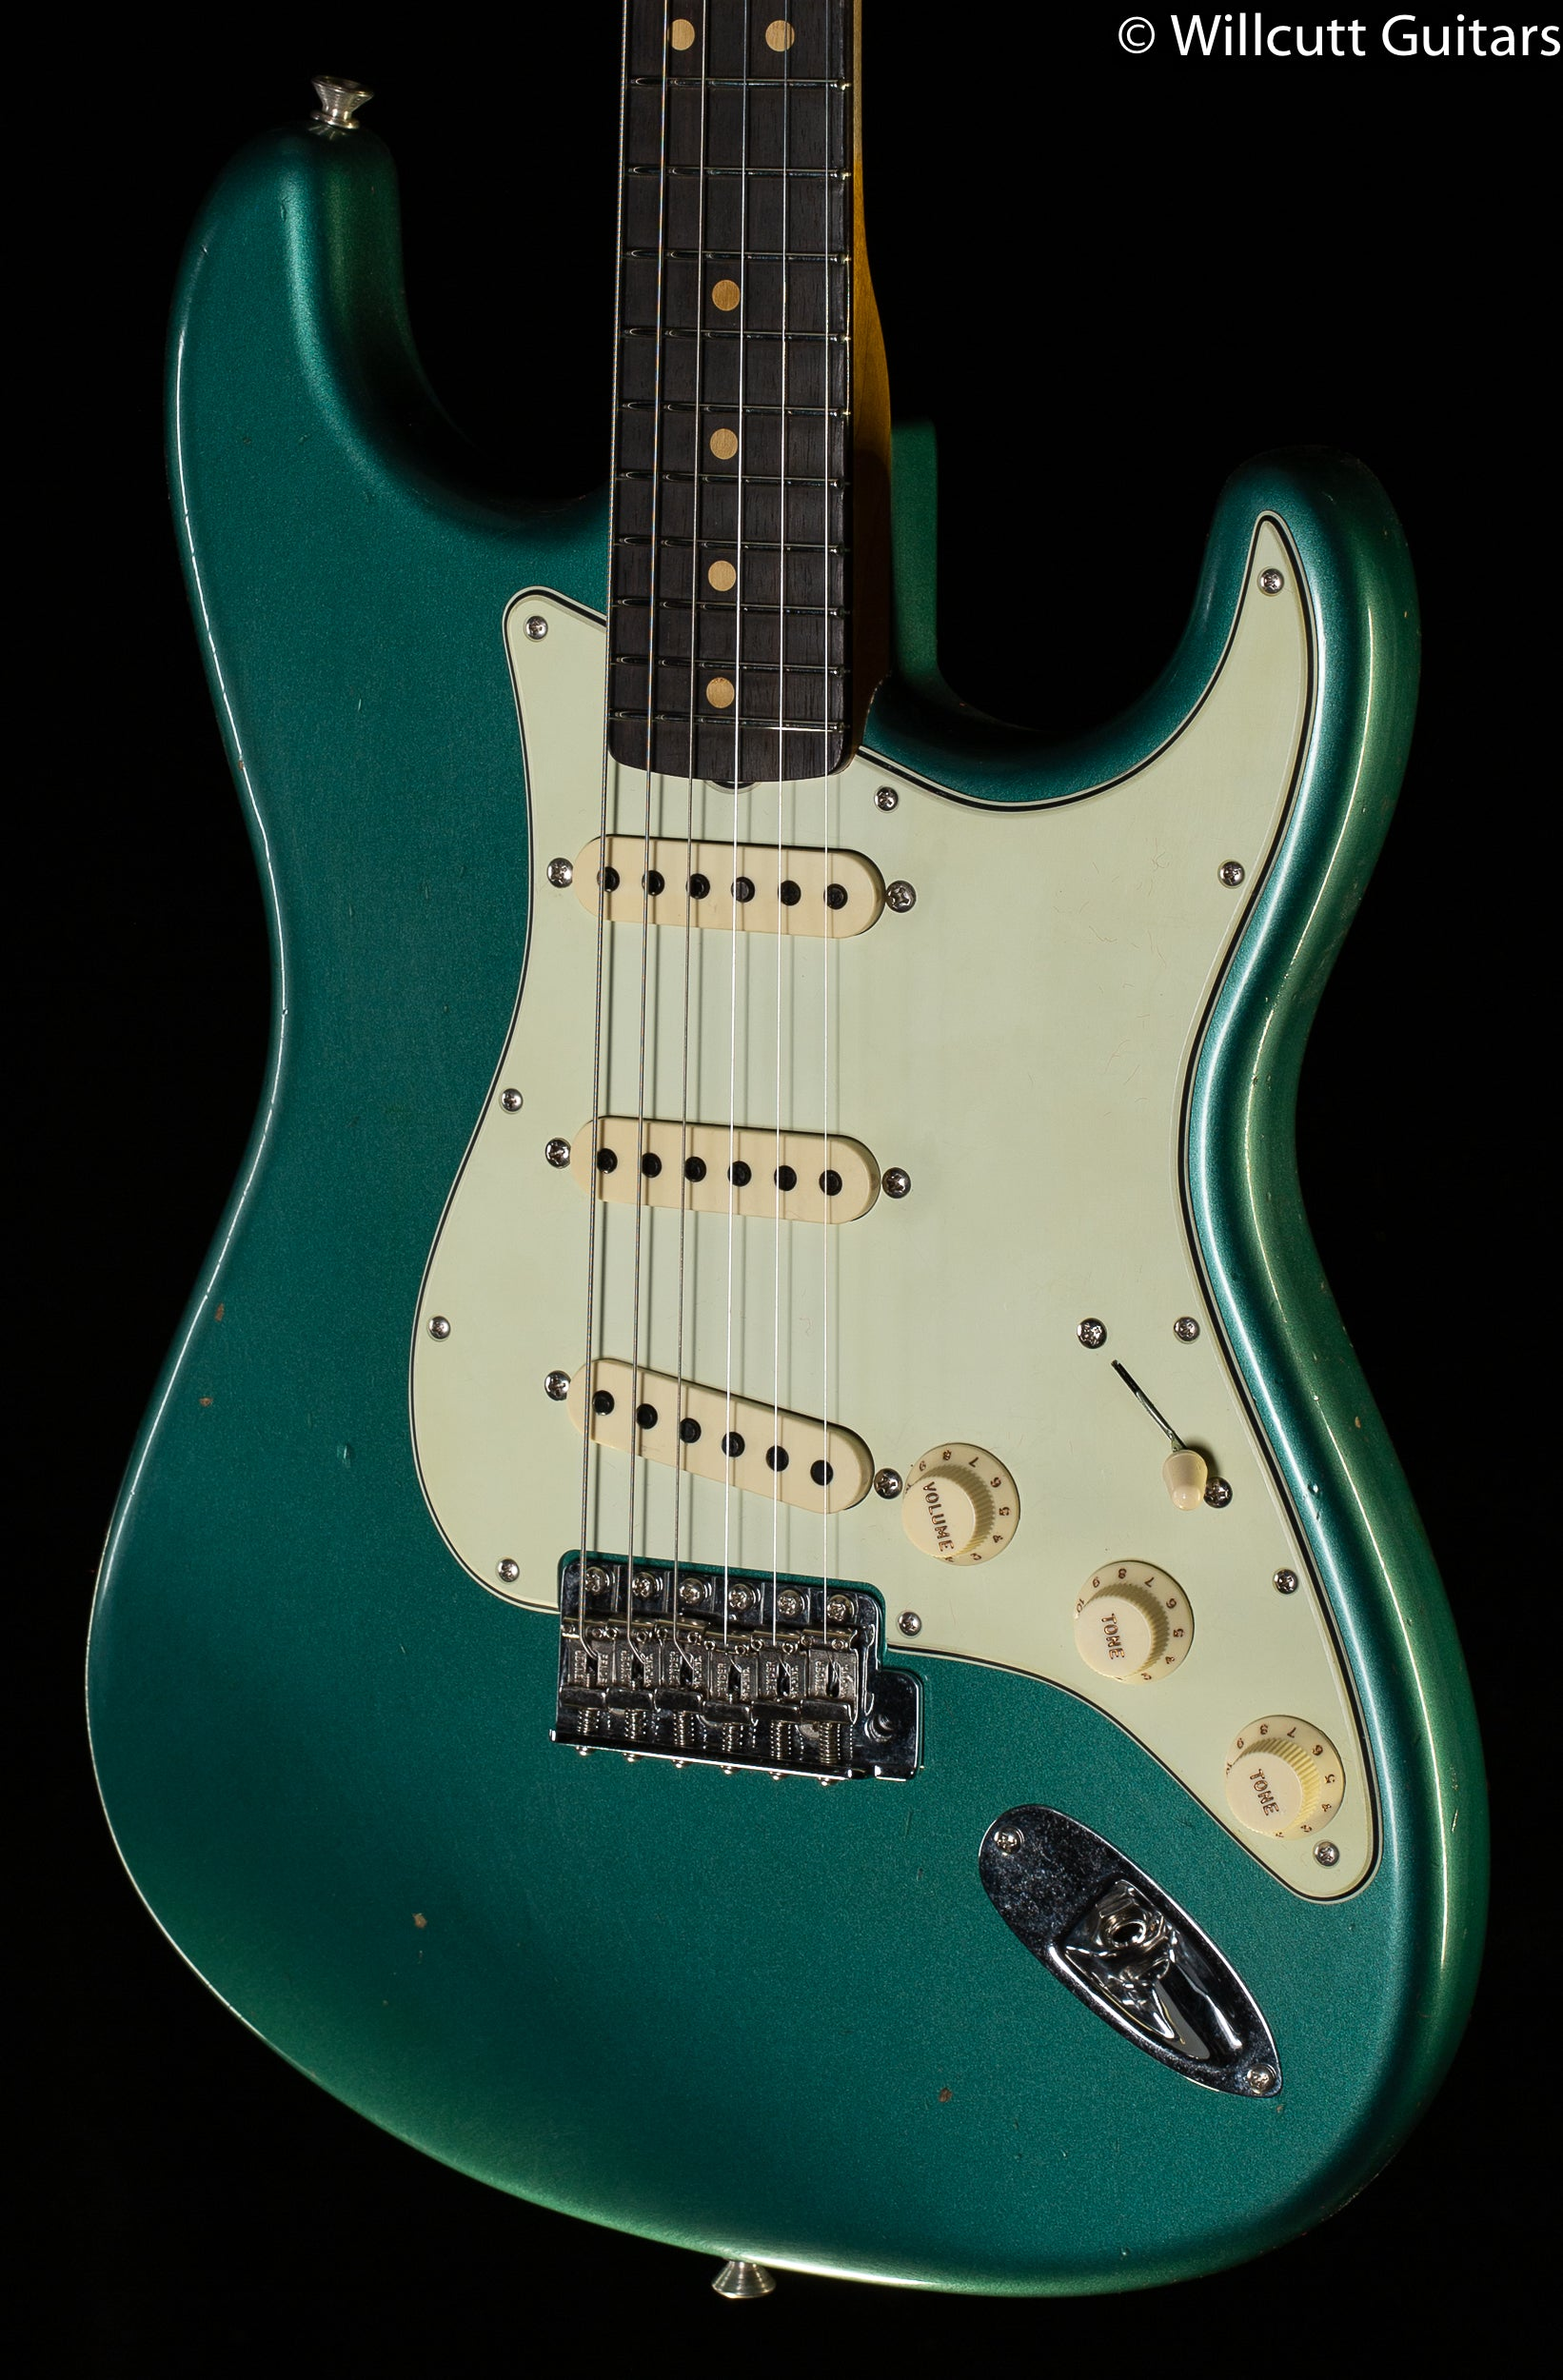 Fender Custom Shop 1963 Stratocaster Journeyman Relic Closet Classic Hardware Faded Aged Sherwood Green Metallic